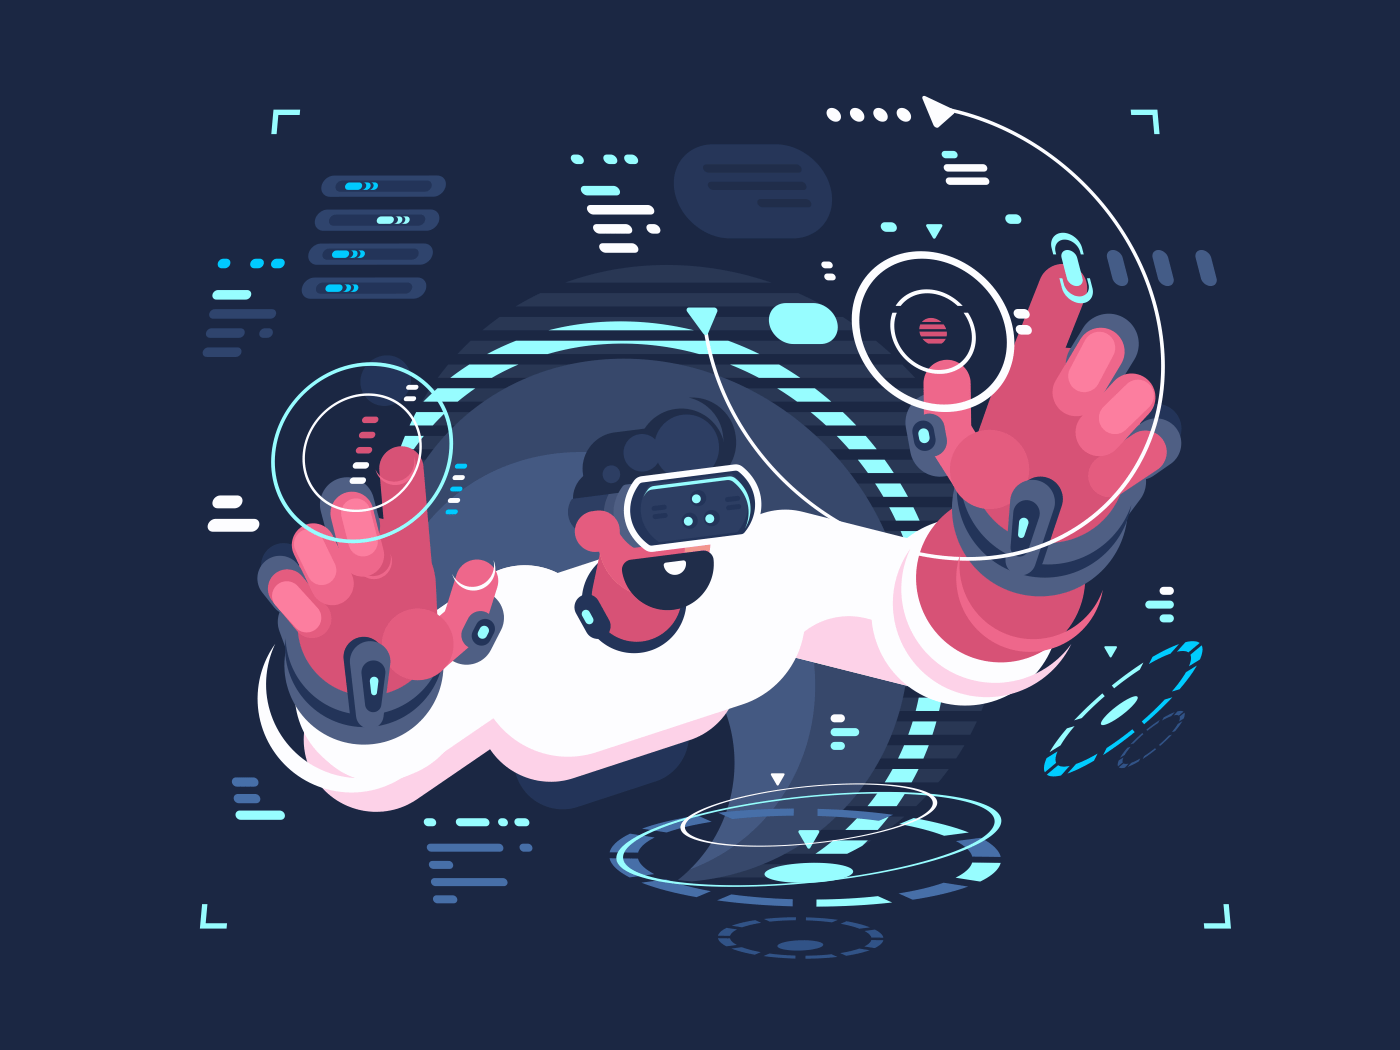 Virtual reality designer creates new digital interface. Vector flat illustration